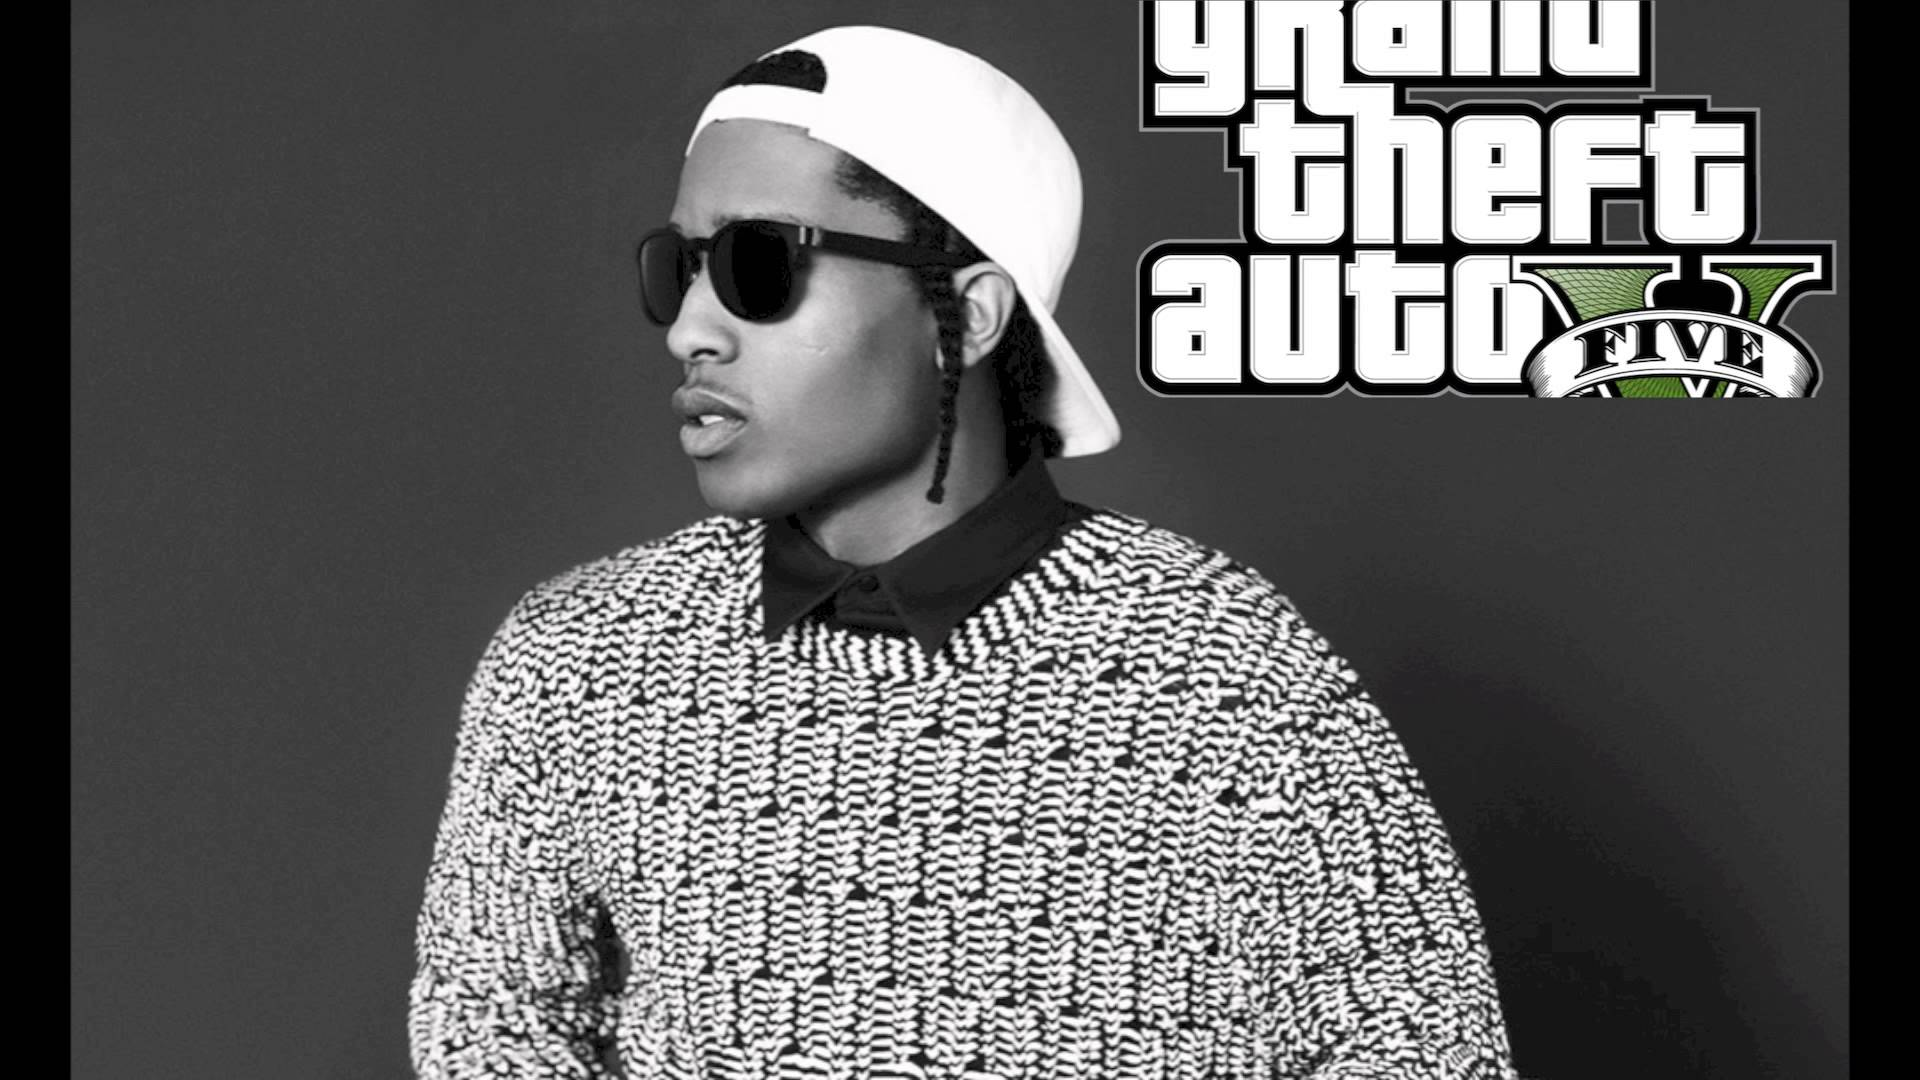 ASAP Rocky Live Wallpaper for Android Free Download - 9Apps